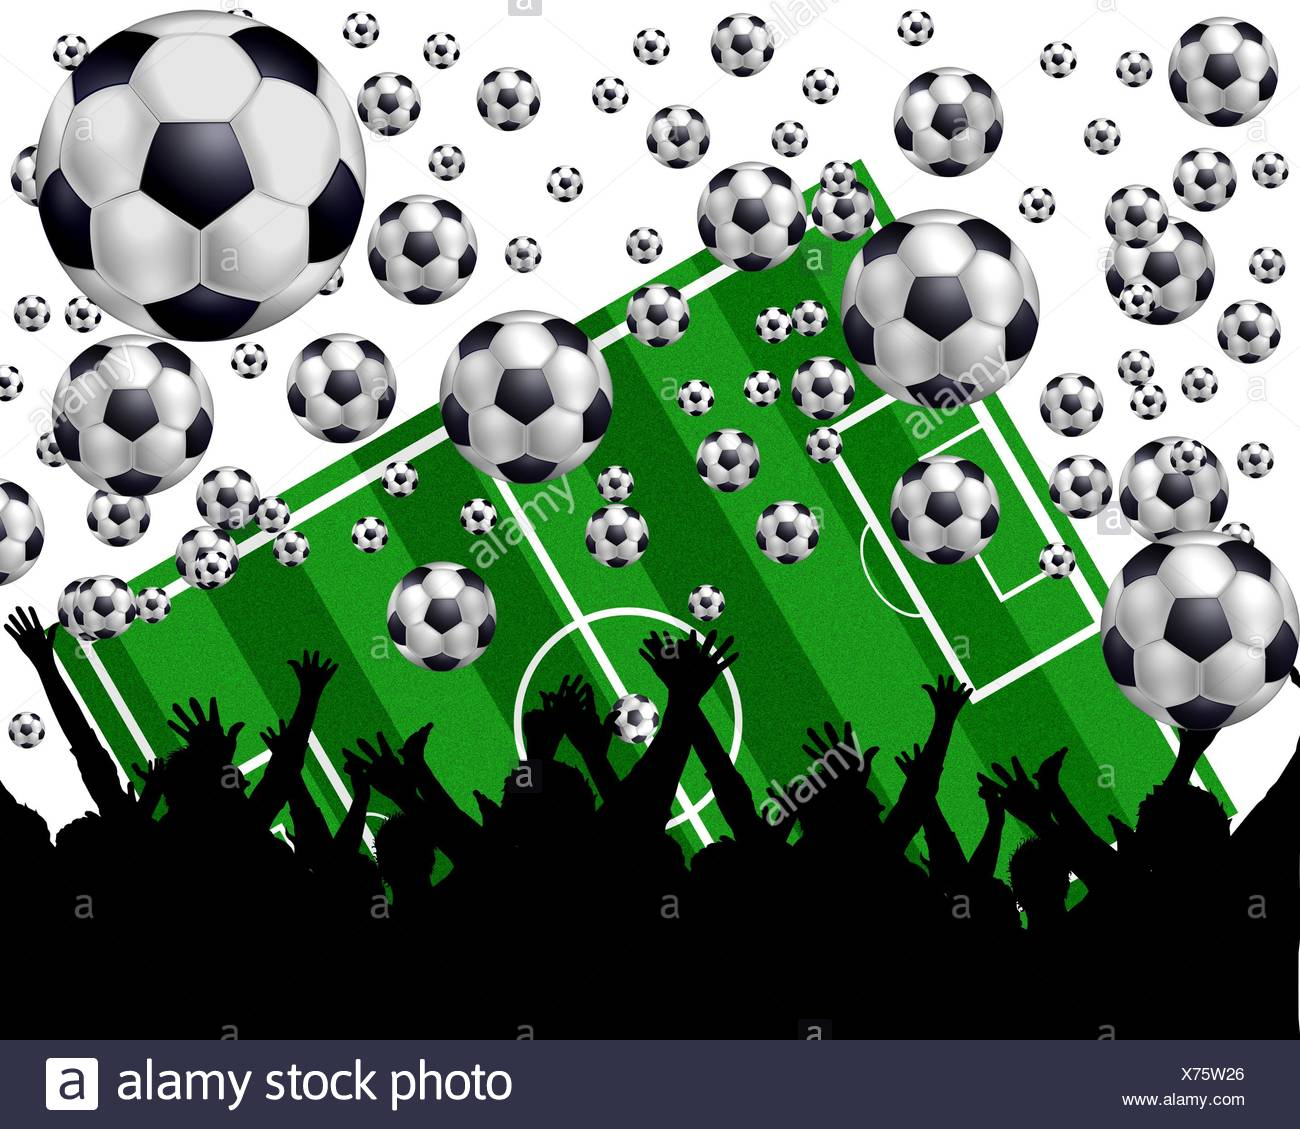 fussball playing field and fans - Stock Image